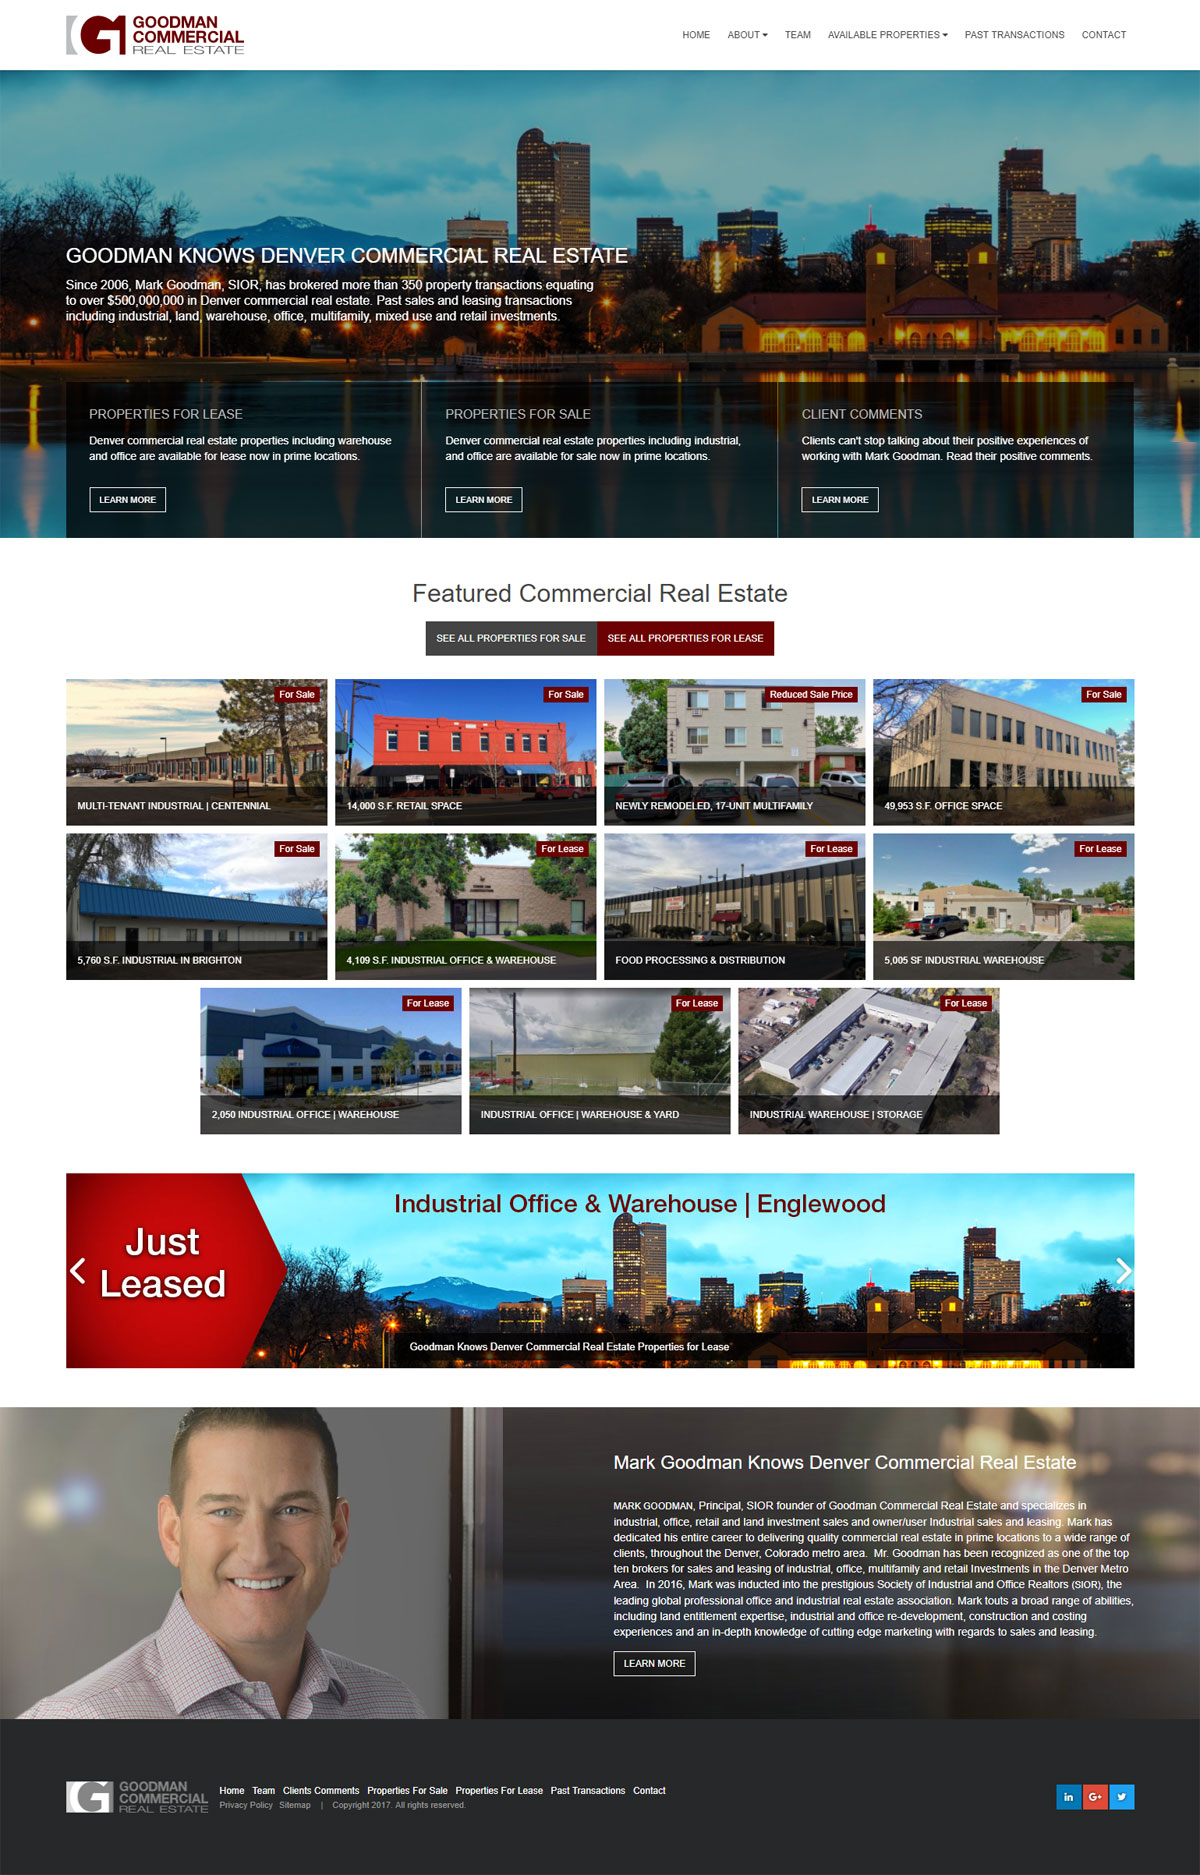 Goodman Commercial Real Estate